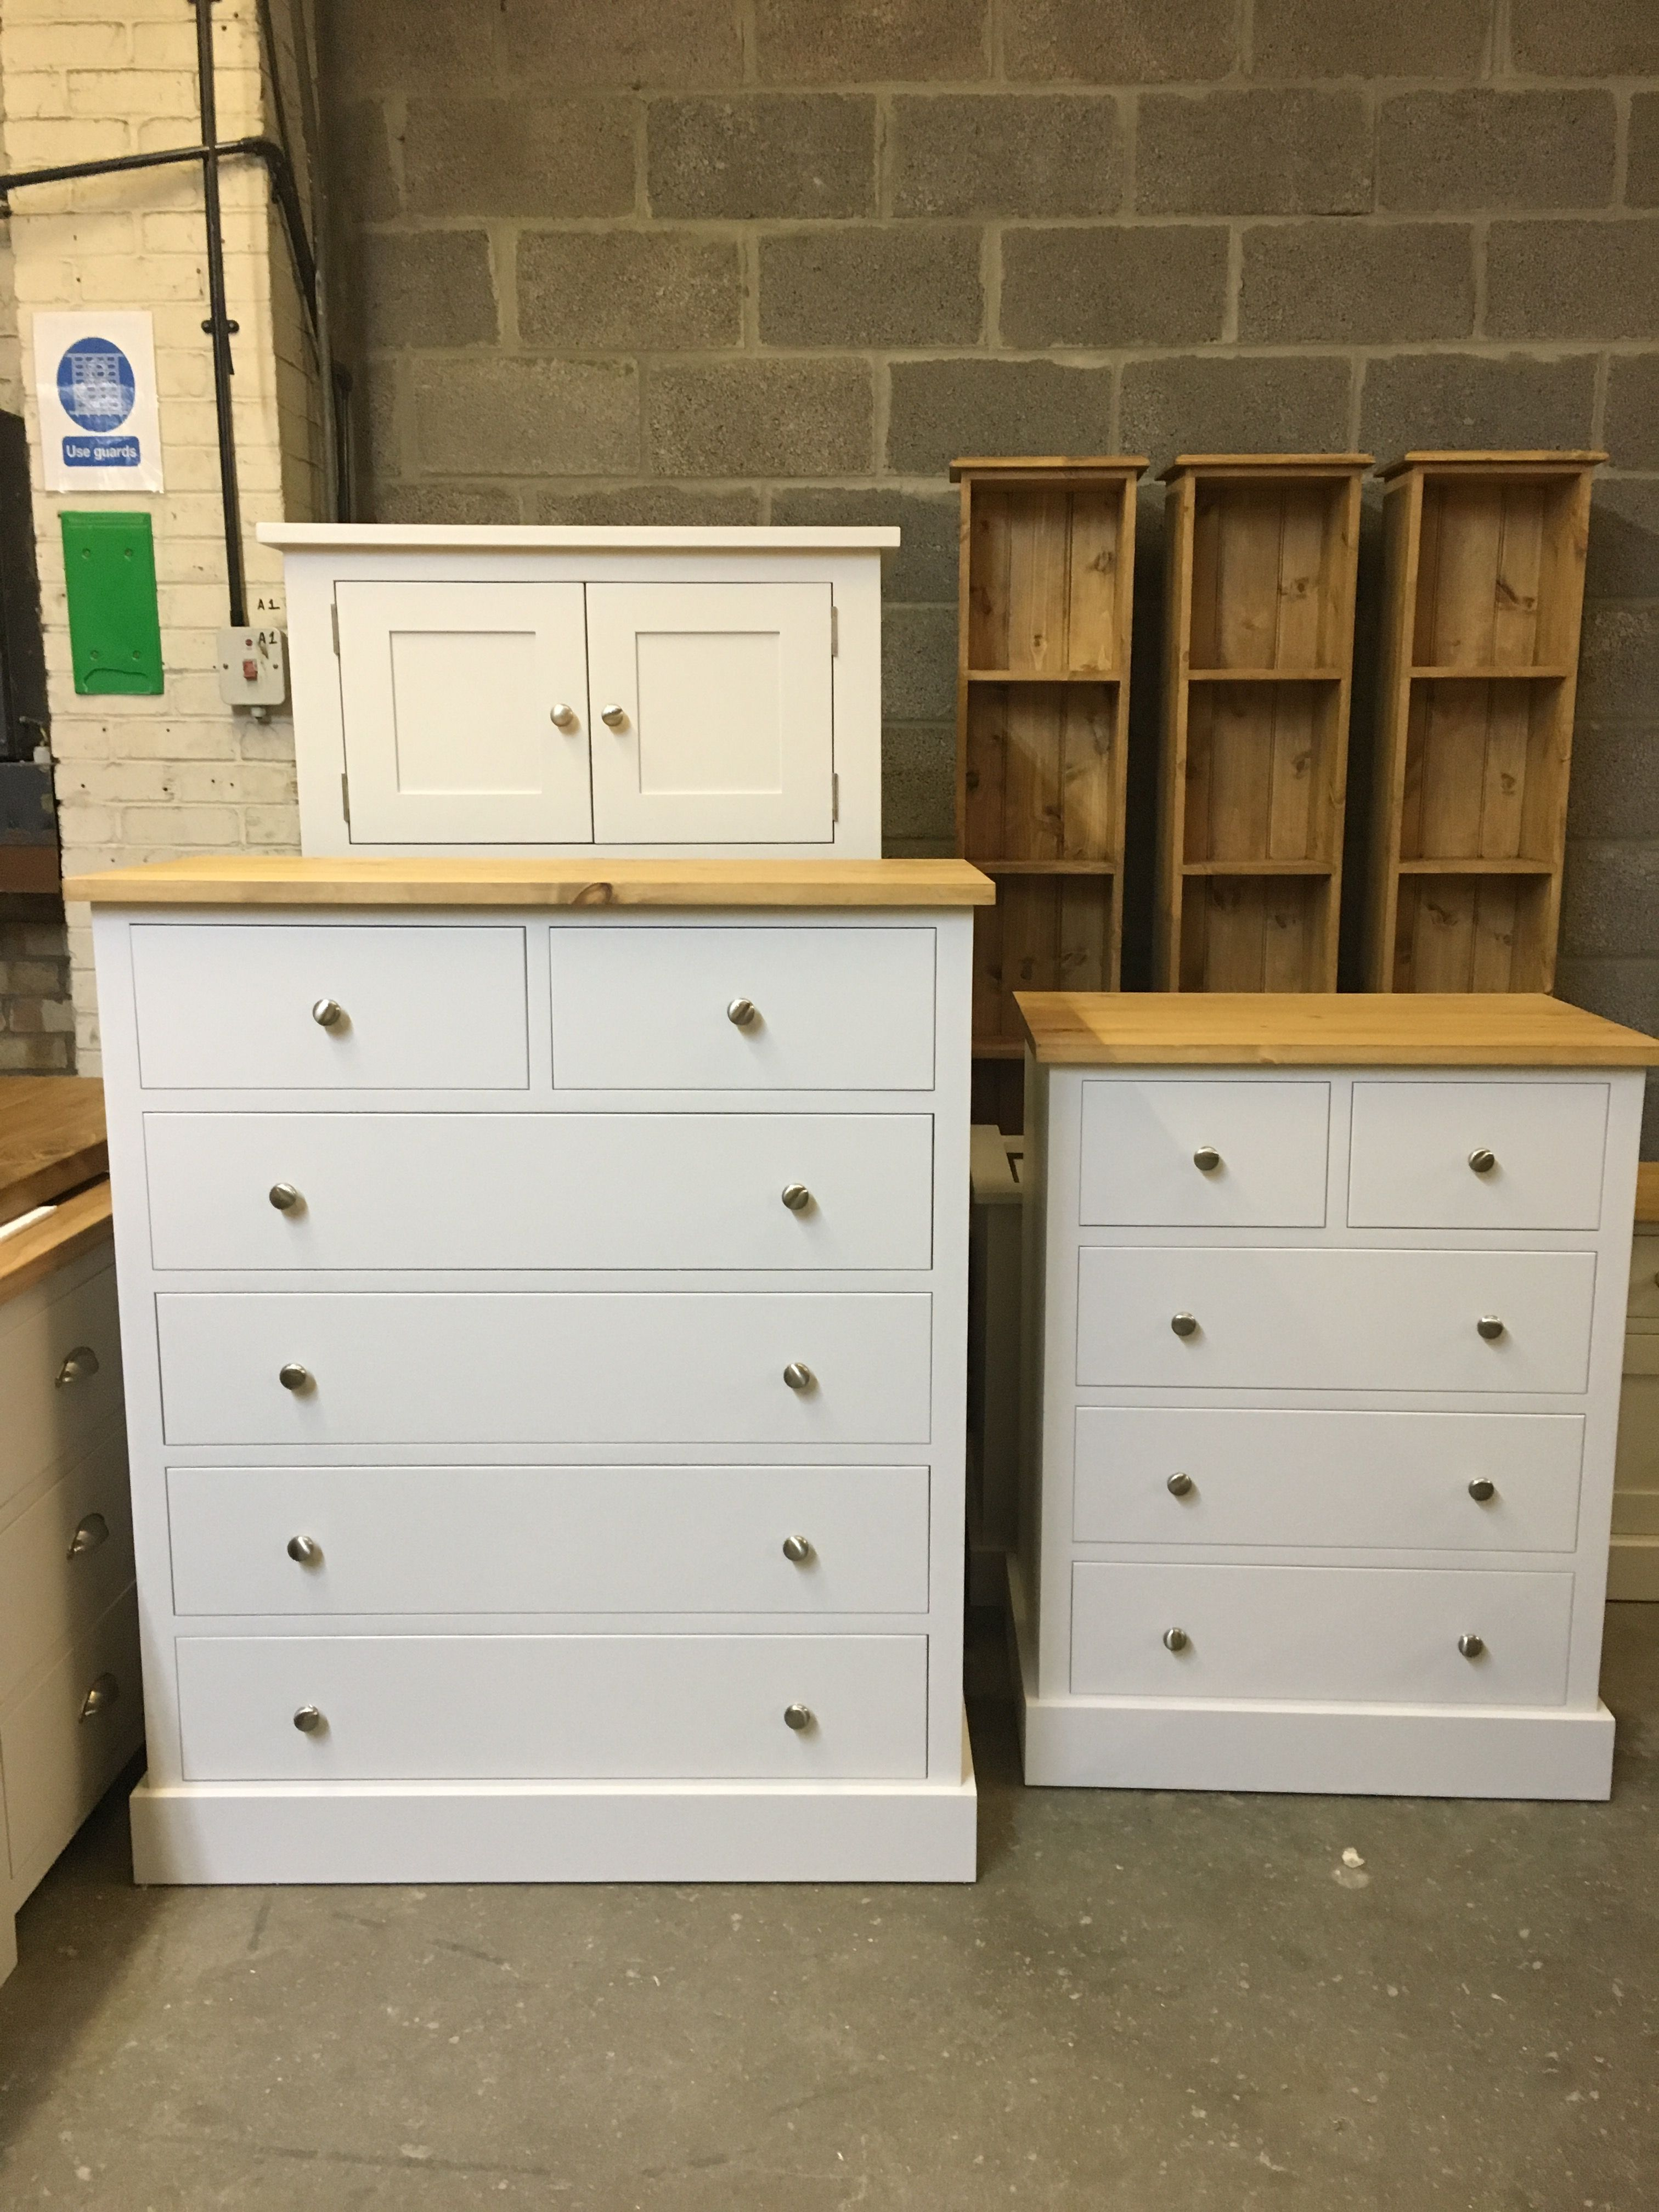 Can Be Made Any Size And Painted Any Colour Cobwebs Furniture Company Bedroom Furniture Furniture Bedroom Furniture Furniture Companies